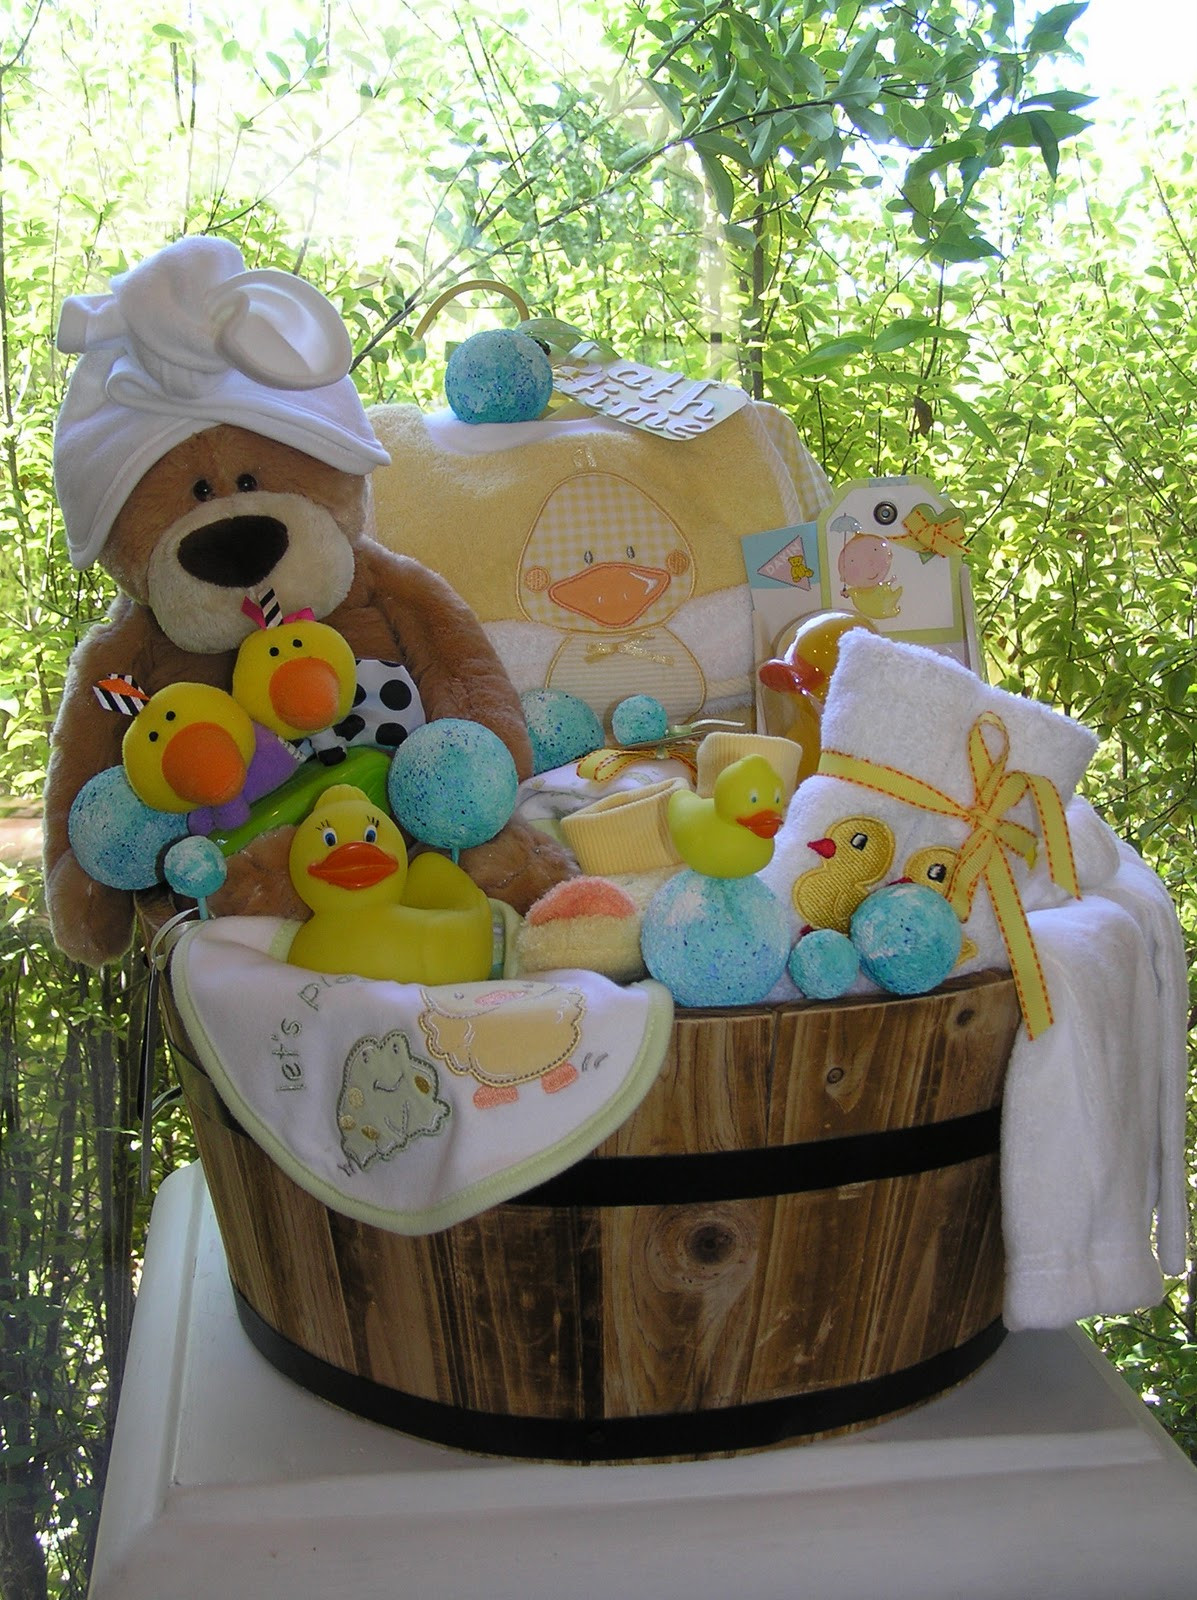 Best ideas about Gift Basket Ideas For Baby Shower . Save or Pin White Horse Relics Unique Themed Baby Gift Baskets Now.